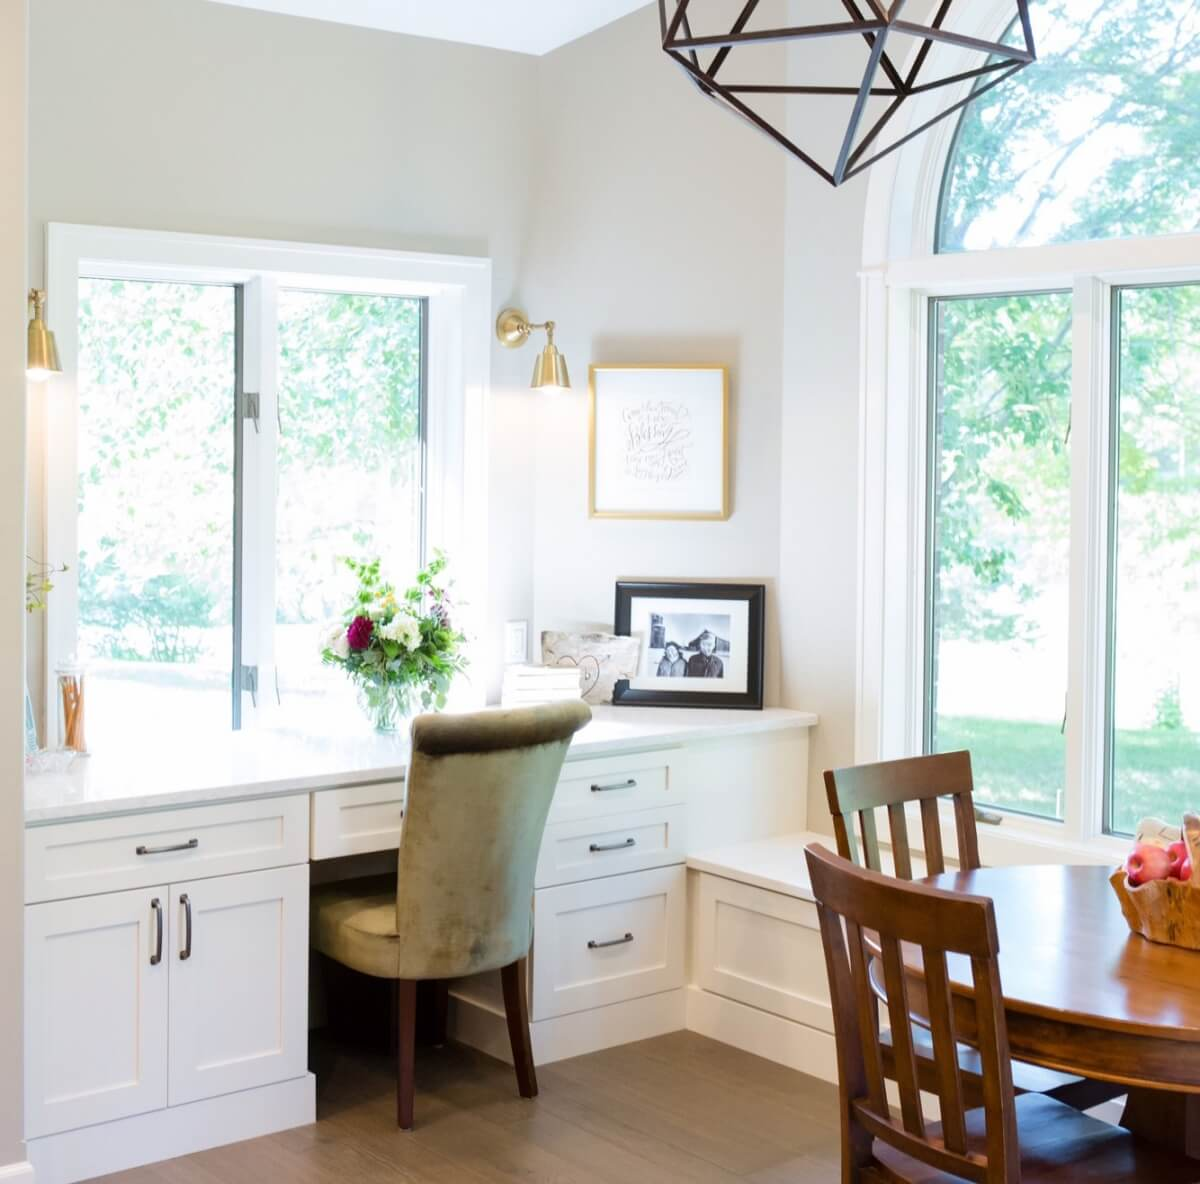 A stunning home office in the diining room with white cabinets and home office desk.